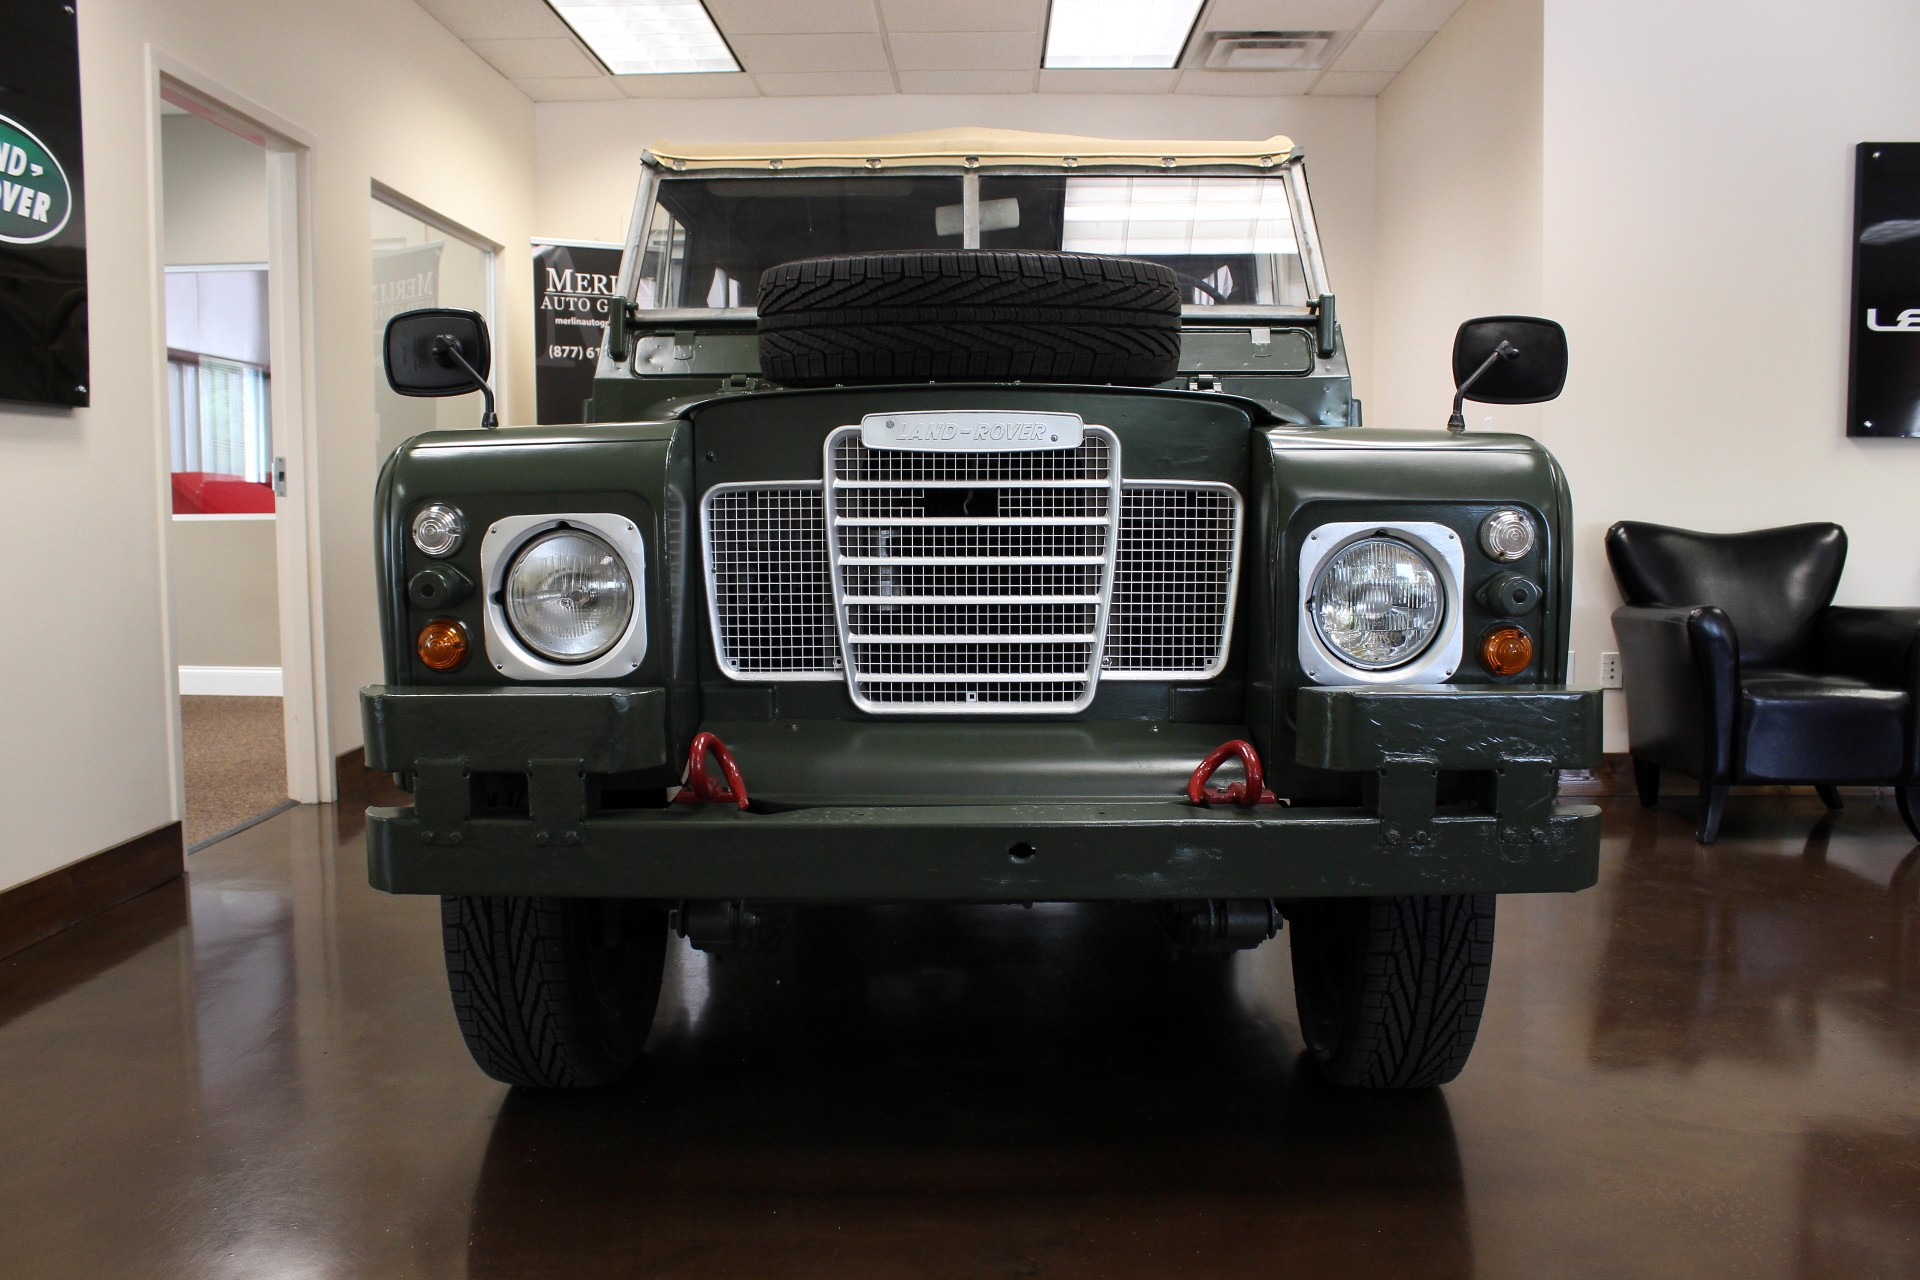 Used 1974 Land Rover Series 3 Stock P1 Ultra Luxury Car From Defender Carburetor The Factory Was Replaced With A New Weber Unit Please Contact Our Sales Department For More Information At 770 457 2699